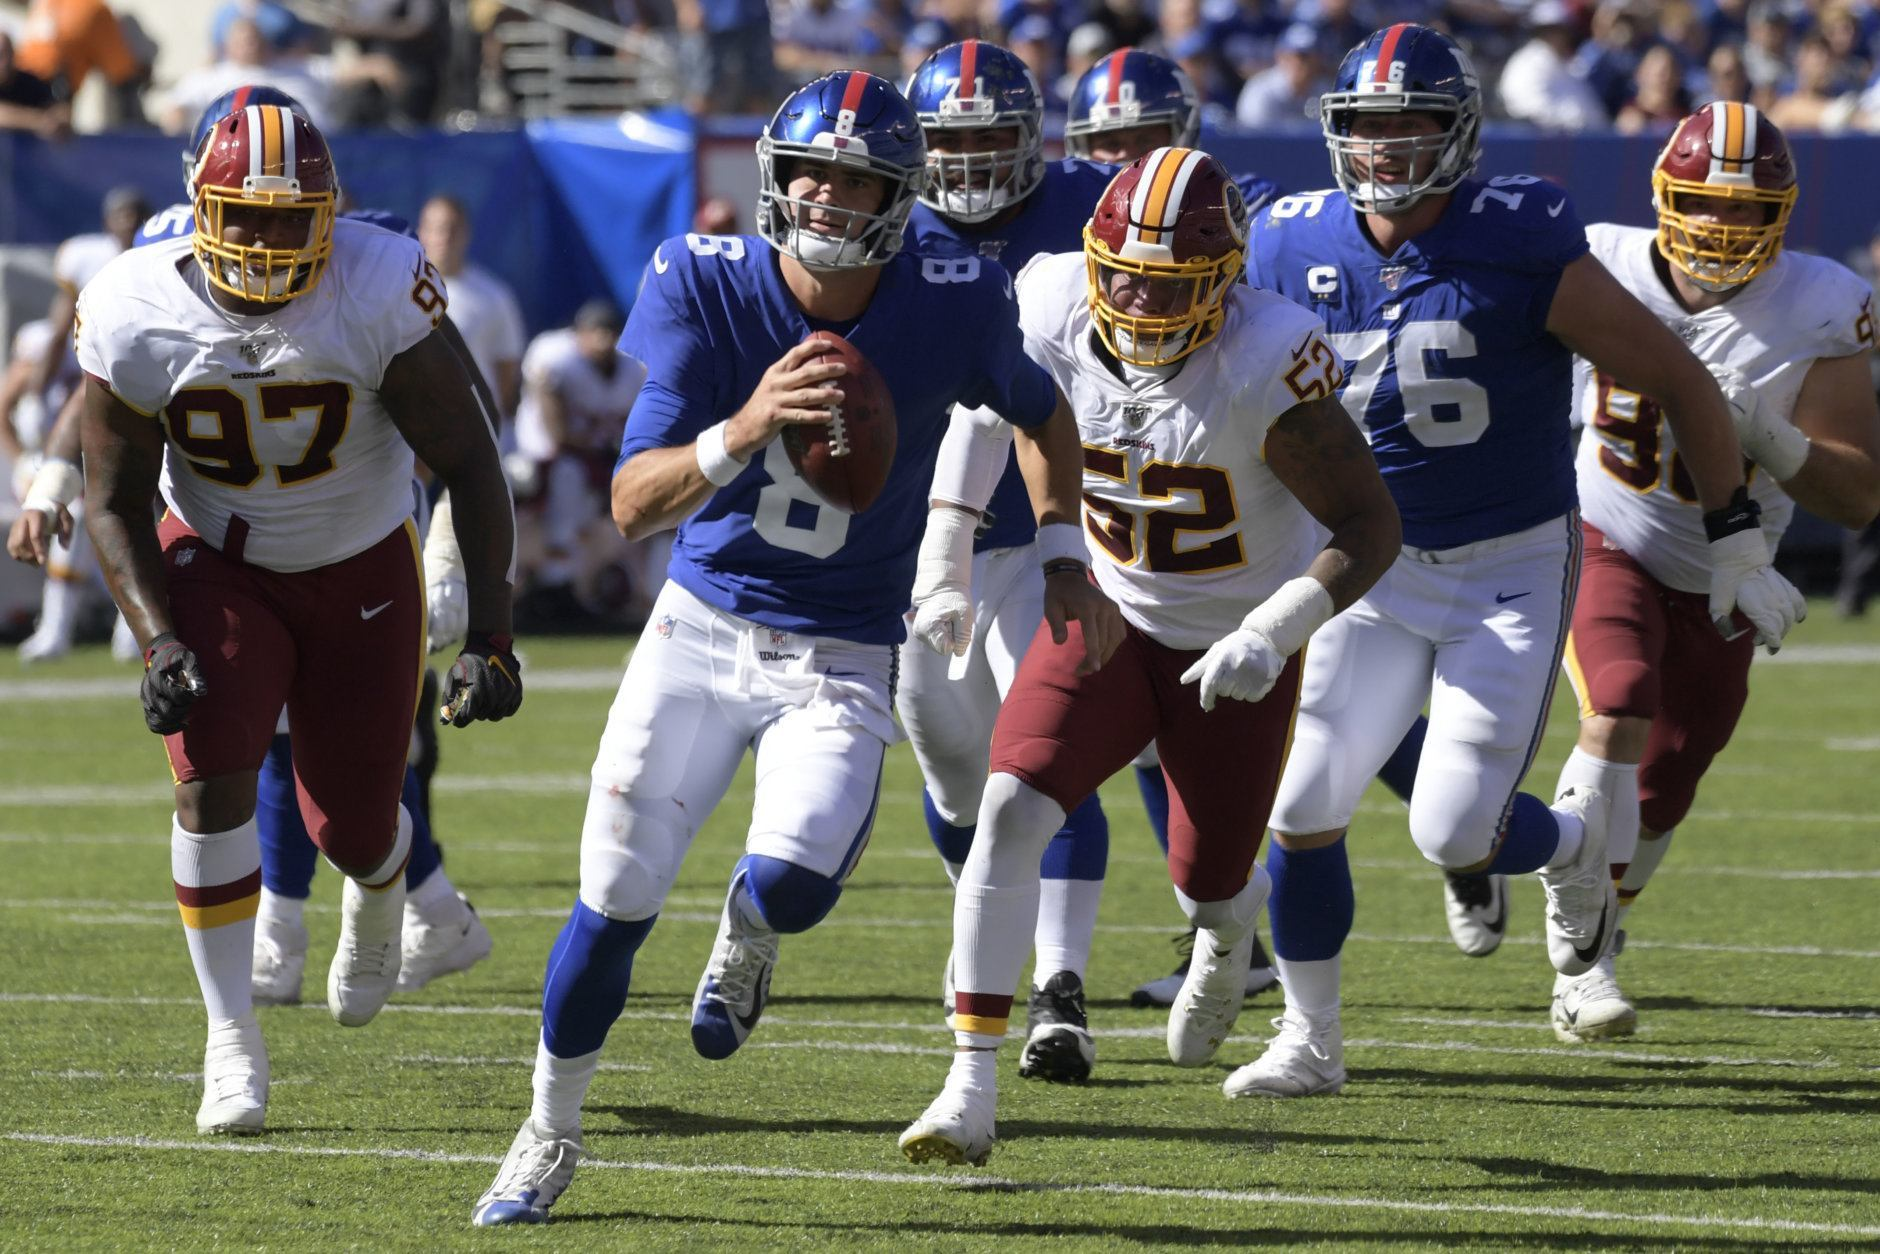 """<p><b><i>Redskins 3</i></b><br /> <b><i>Giants 24</i></b></p> <p>A week after <a href=""""https://profootballtalk.nbcsports.com/2019/09/22/daniel-jones-uses-magic-four-letter-word-to-get-giants-going/"""">jump-starting the Giants with his potty mouth</a>, Daniel Jones became the first Giants rookie QB to win his first two starts since Phil Simms in 1979 … and on the same day fellow first-round rookie Dwayne Haskins became the first &#8216;Skins QB to throw a Pick-6 in his first career game since Stan Humphries in 1989. With the 4-0 Patriots set to invade FedEx Field, this <a href=""""https://twitter.com/granthpaulsen/status/1176476033018671105?s=21"""">already-miserable stretch</a> will extend to 0-5 and Jay Gruden&#8217;s tenure will almost certainly end before a battle of winless teams in Miami. Book it.</p>"""